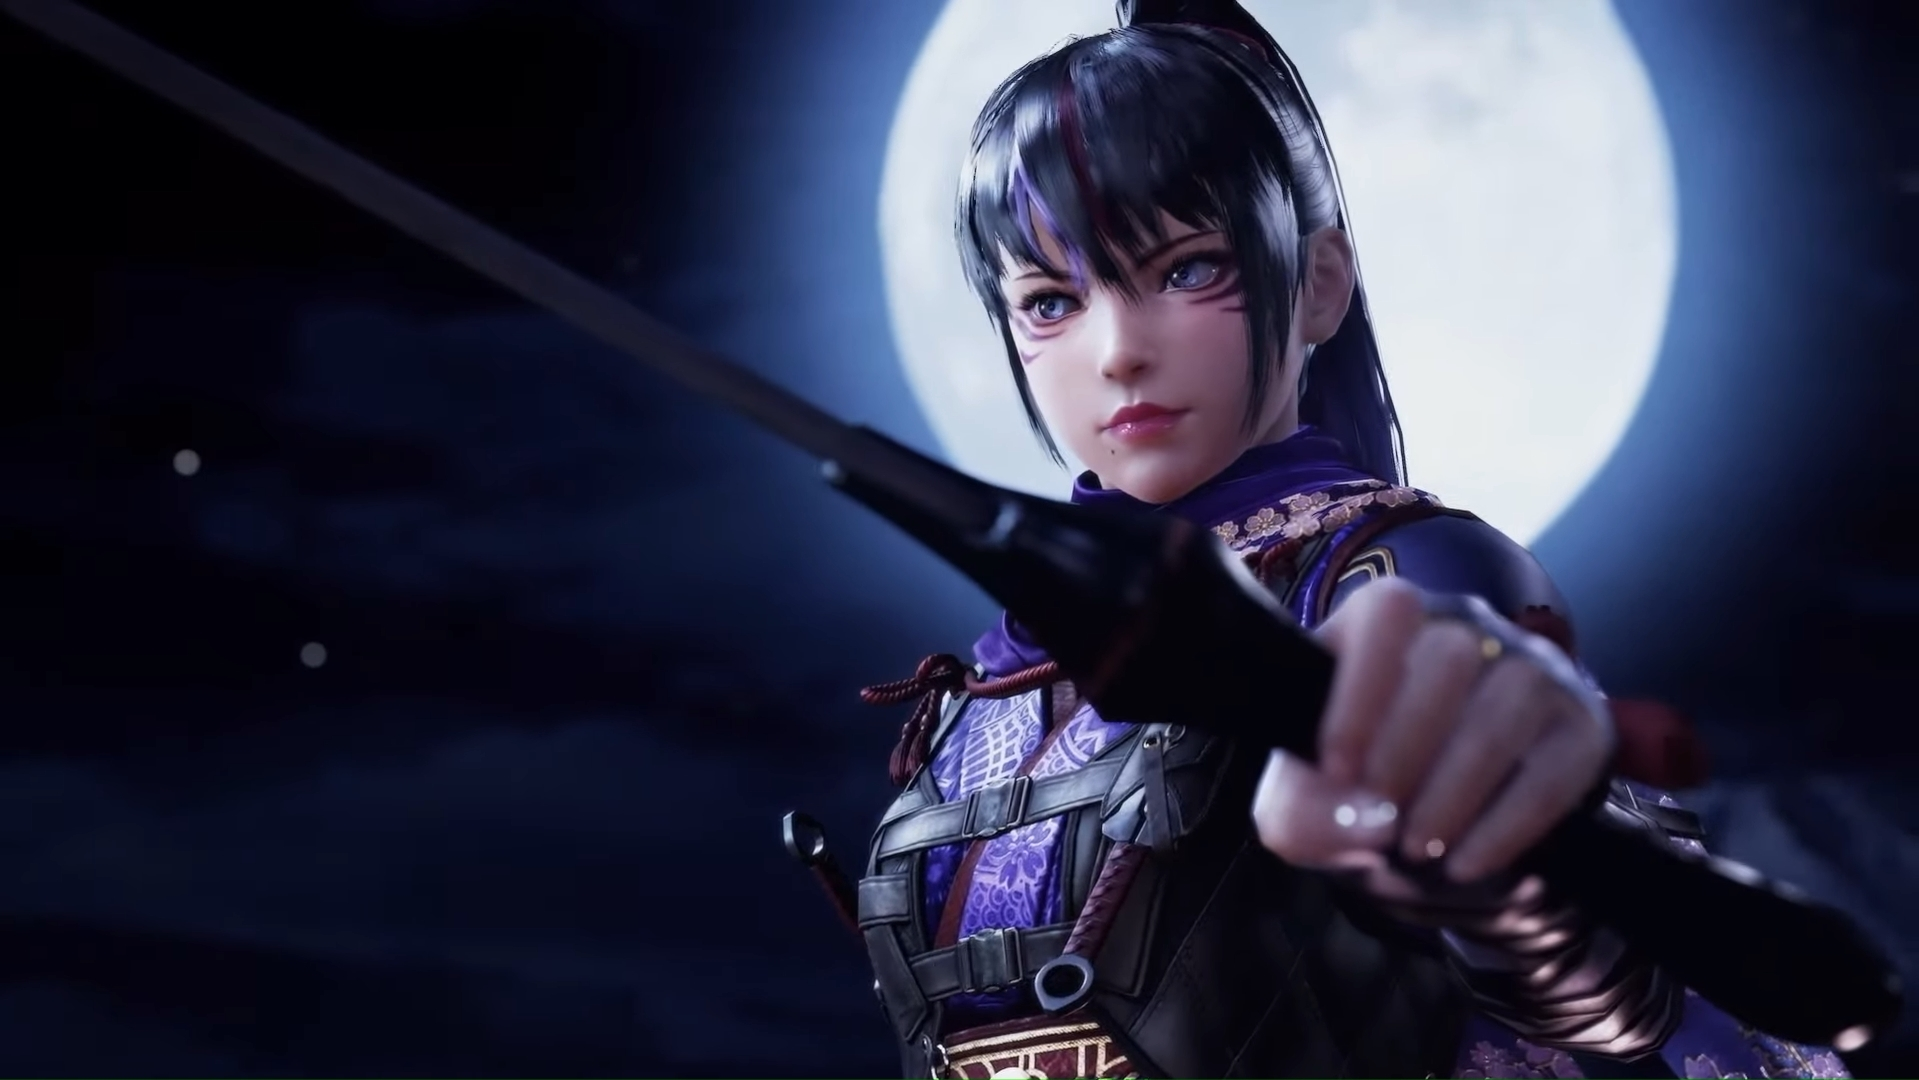 Kunimitsu II will bring her ninja ways to Tekken 7 this fall